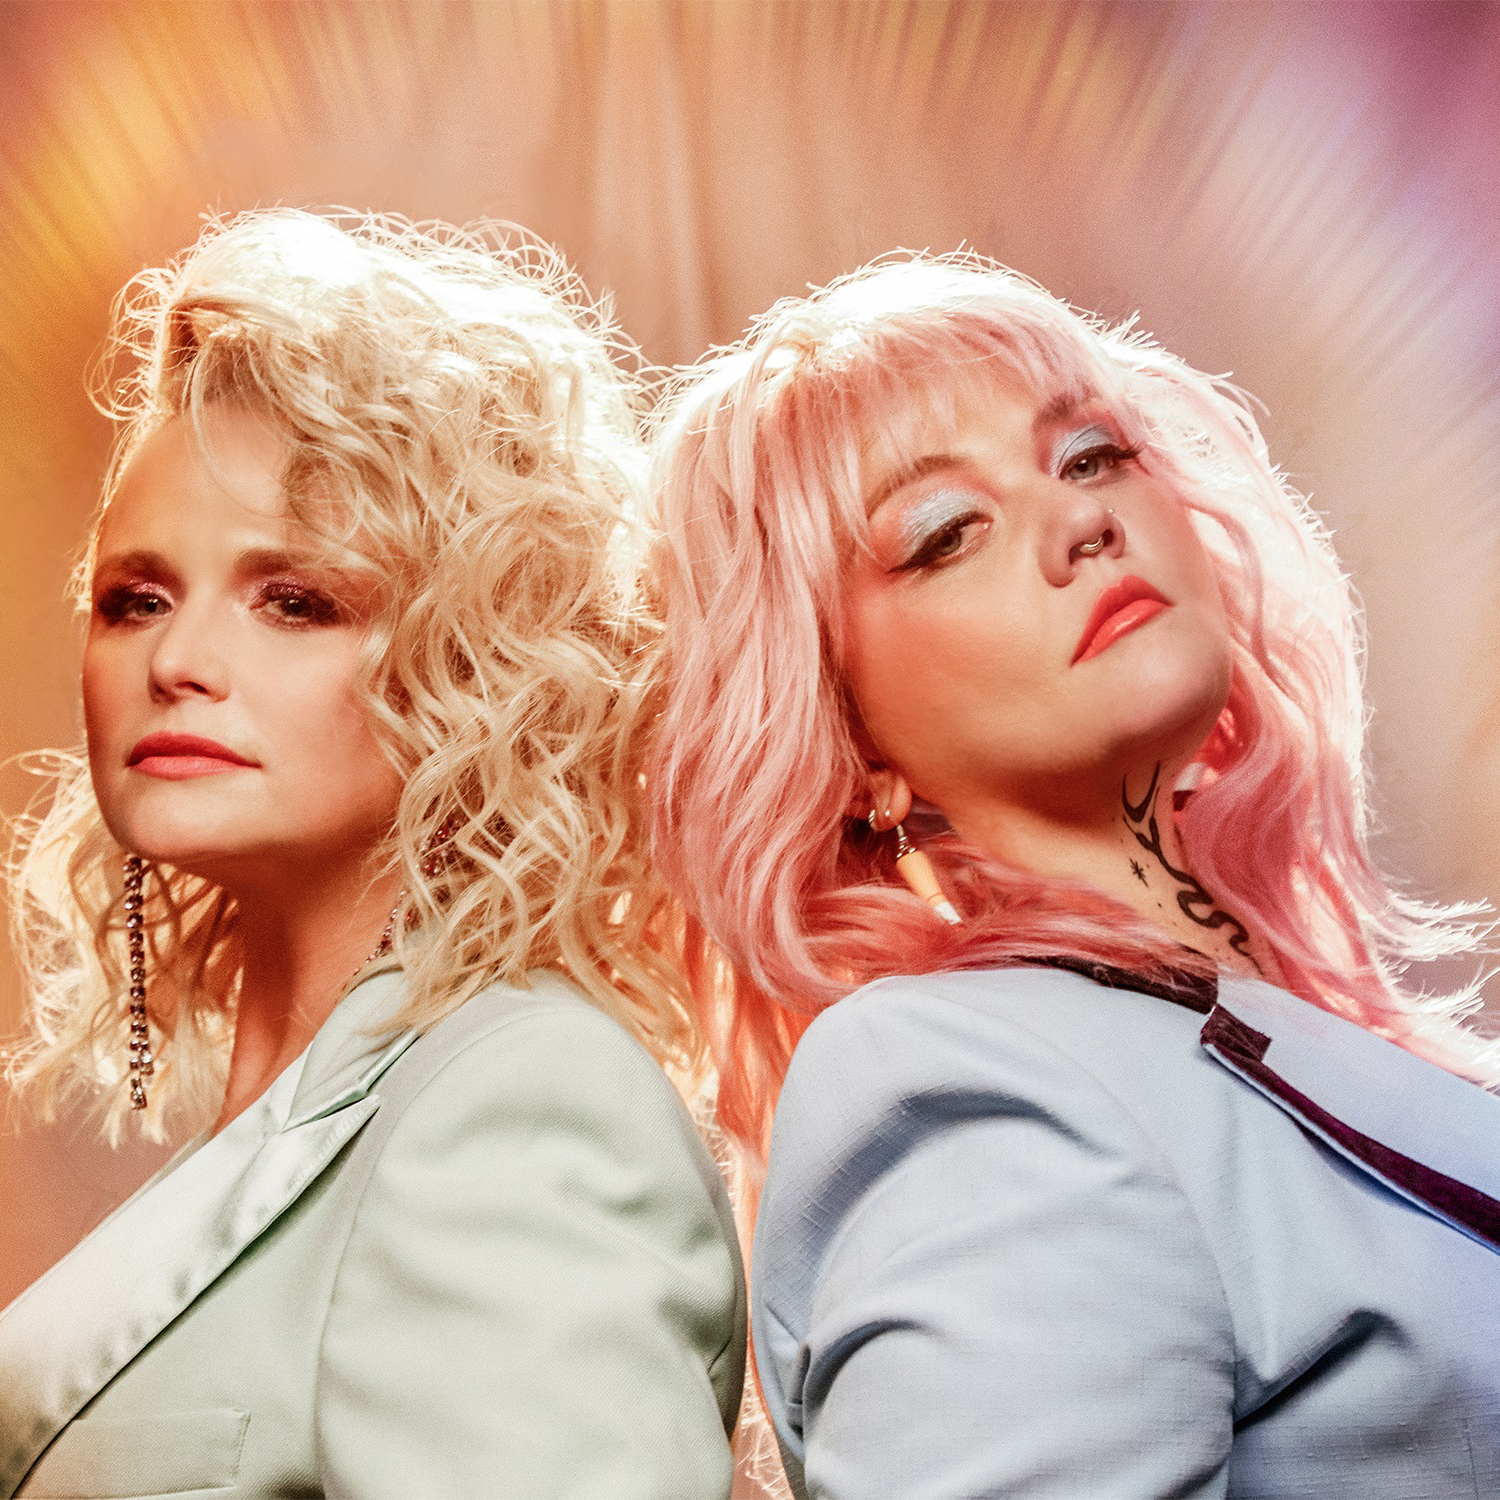 """Elle King and Miranda Lambert """"Drunk"""" PR image for Sony music by Kimberly Manfre, uploaded by Sarah Weinstein Dennison, for use by 360 Magazine"""